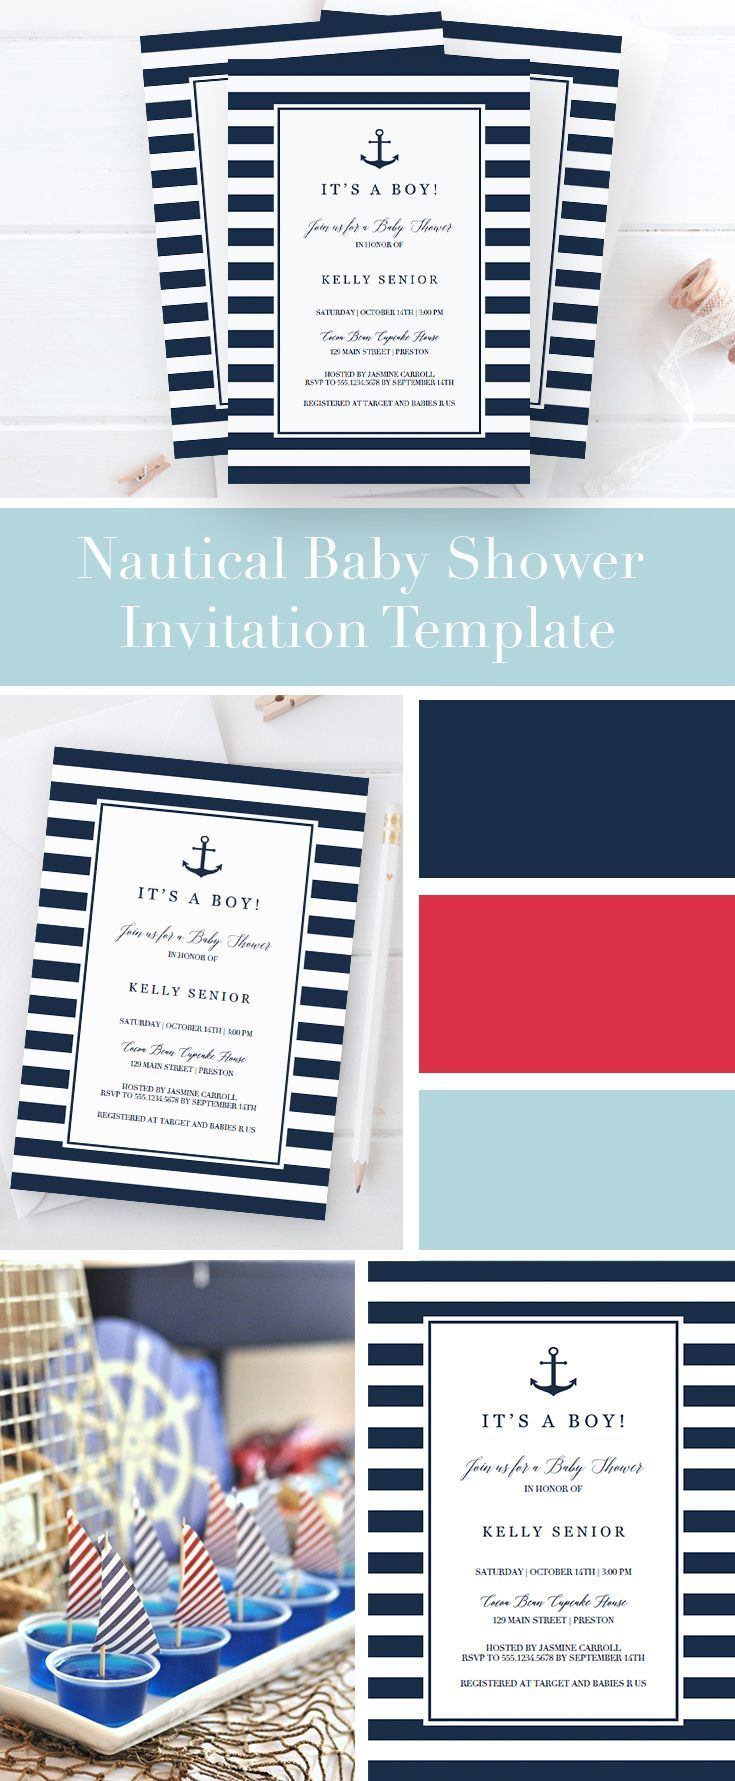 Nautical Baby Shower ideas by LittleSizzle. Baby Shower Invitation Template for boy. Make the perfect announcement of your friends baby shower with this chic navy blue baby shower invitation. Easily personalize the invitation with your own words. Simply download, edit, print and trim!